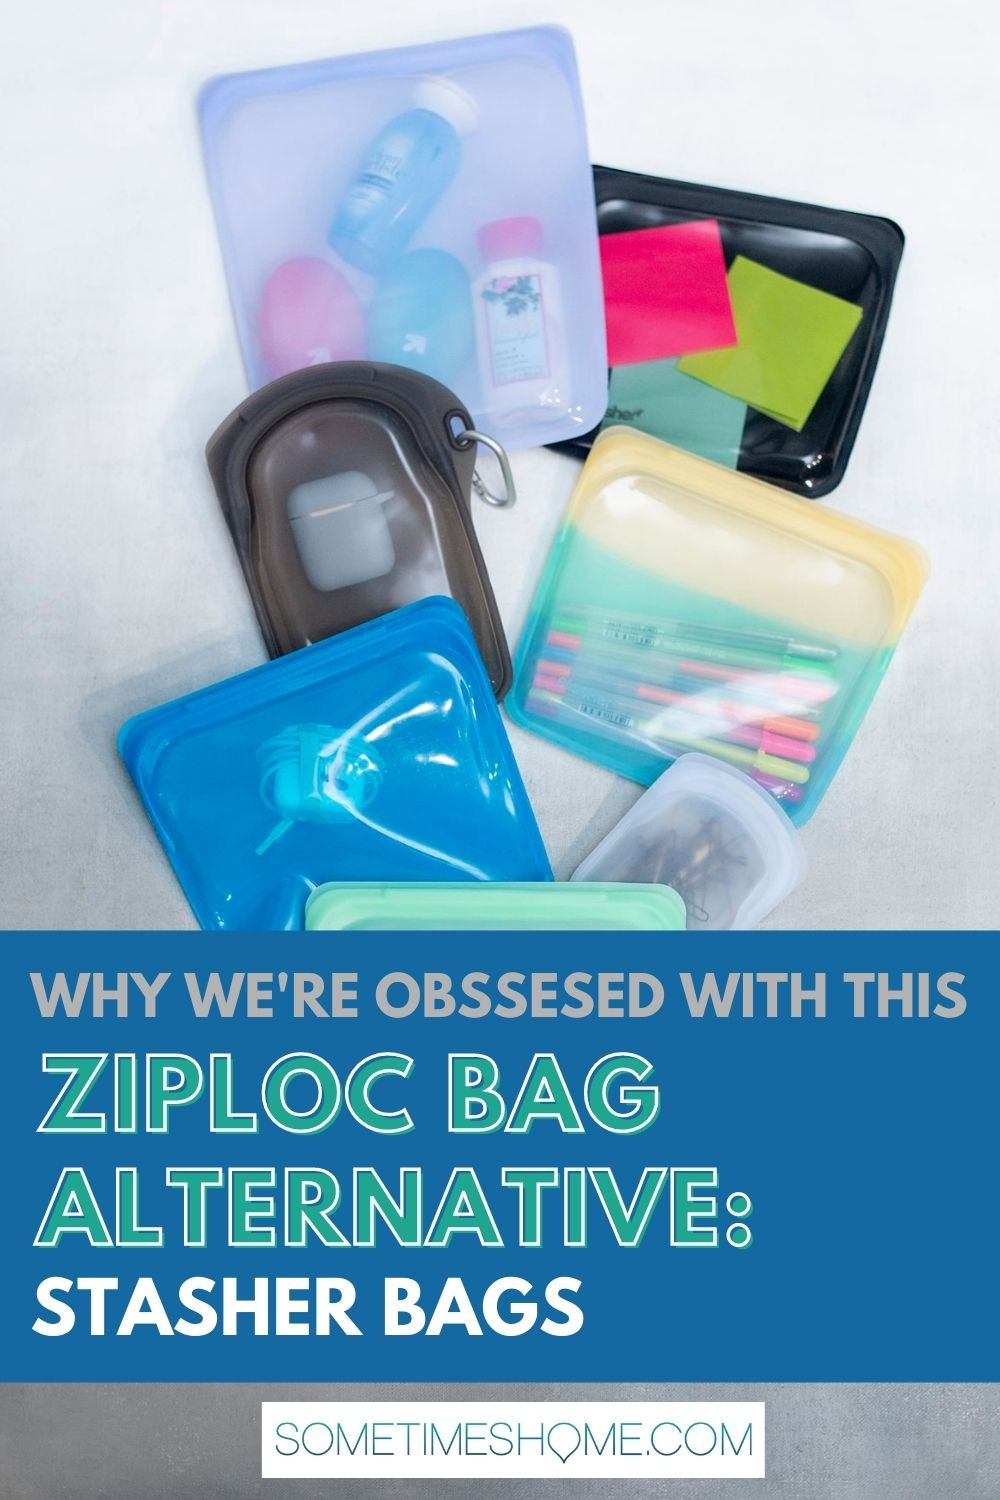 Why we're obsessed with this Ziploc bag alternative: Stasher Bags, with an image of the colorful bags behind it.